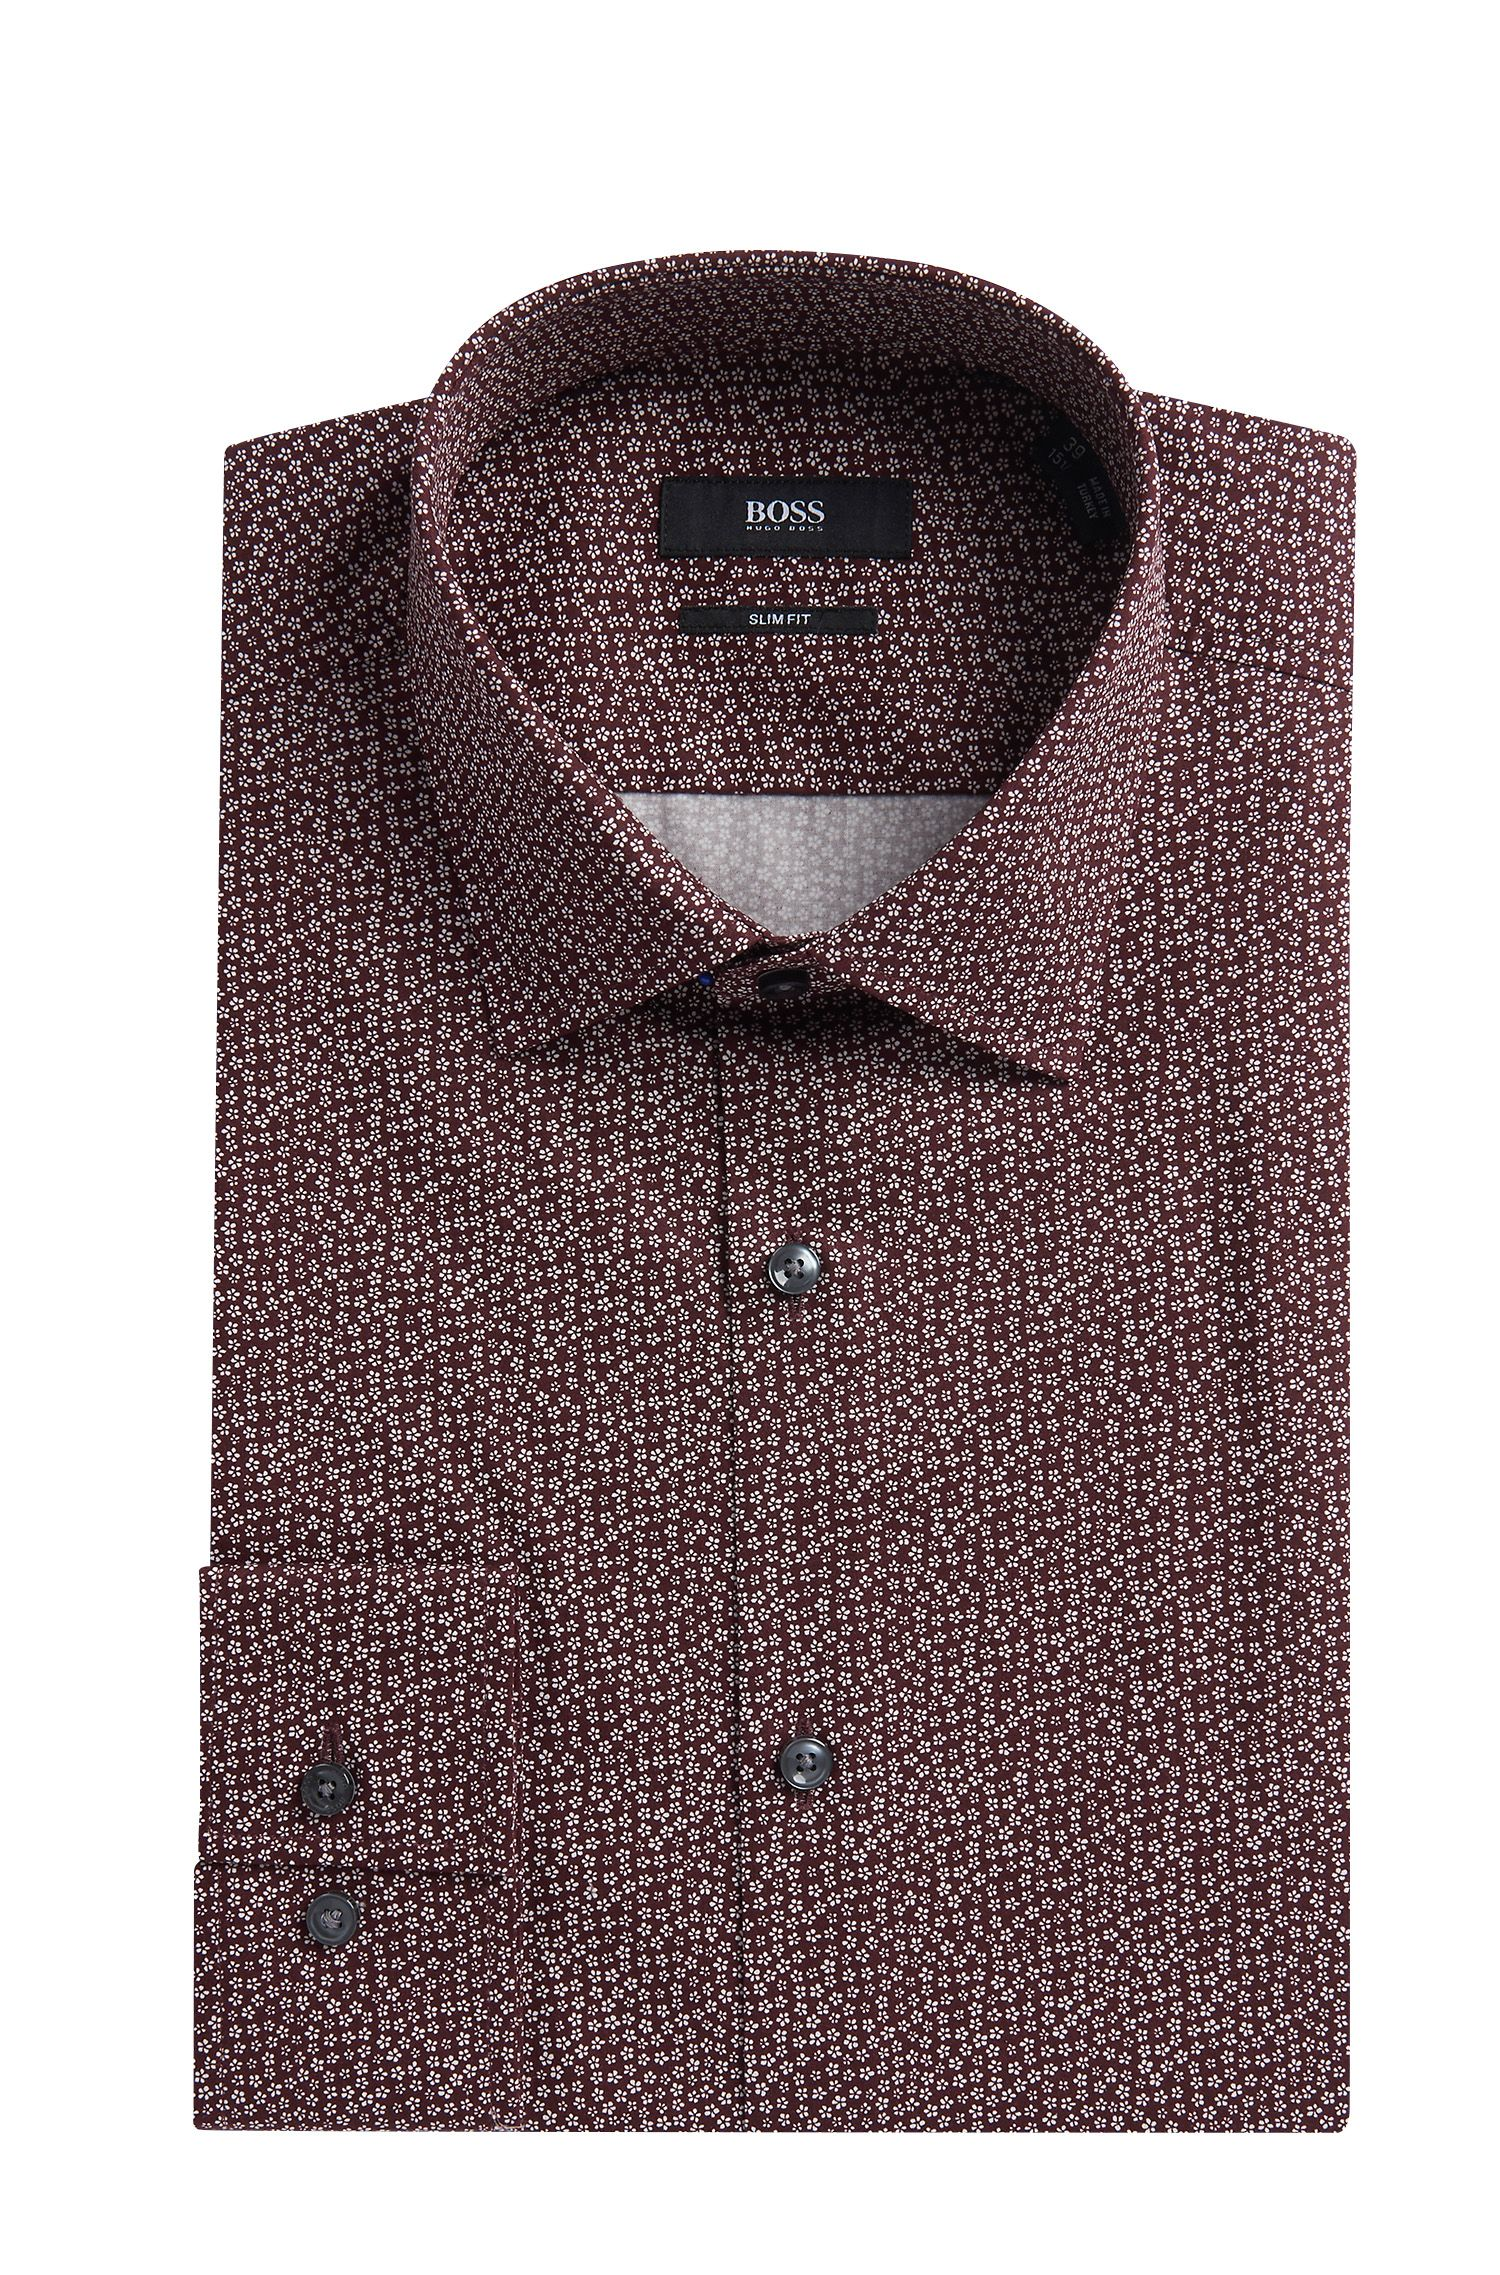 Flower-Print Cotton Dress Shirt, Slim Fit | Jenno